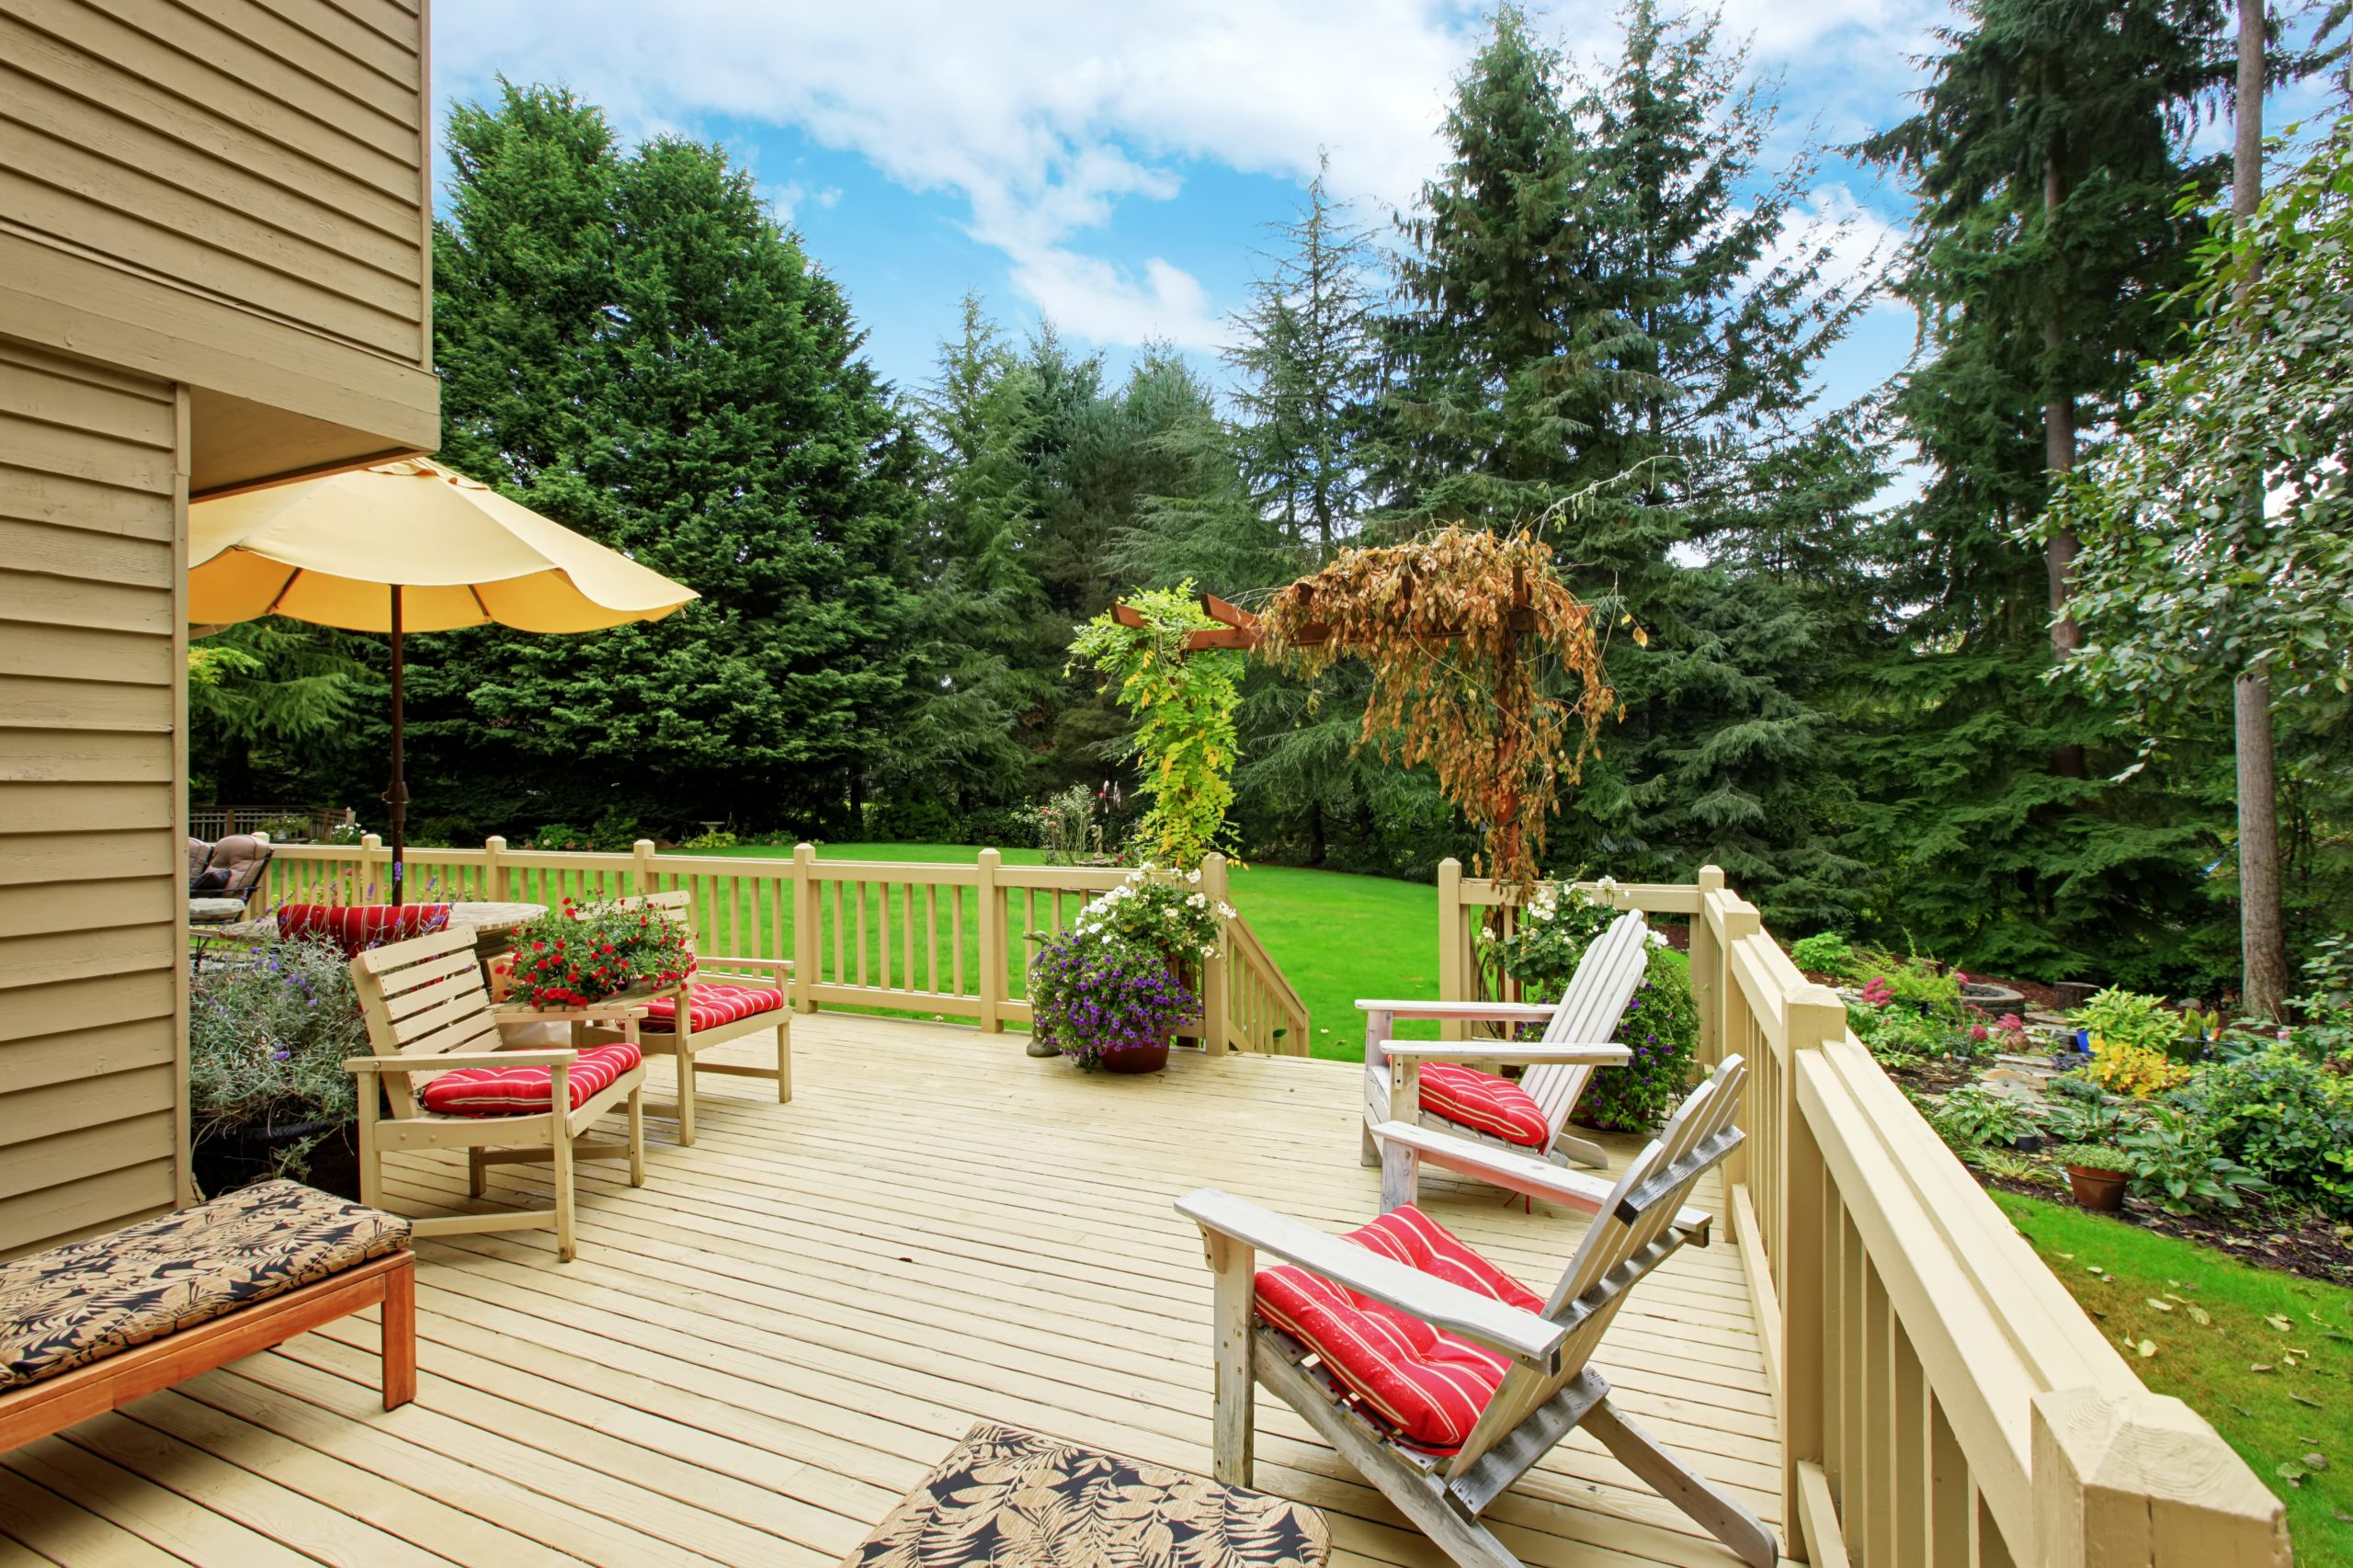 wraparound deck builder decks decking porch porches lexington kentucky contractor contractors professional construction company